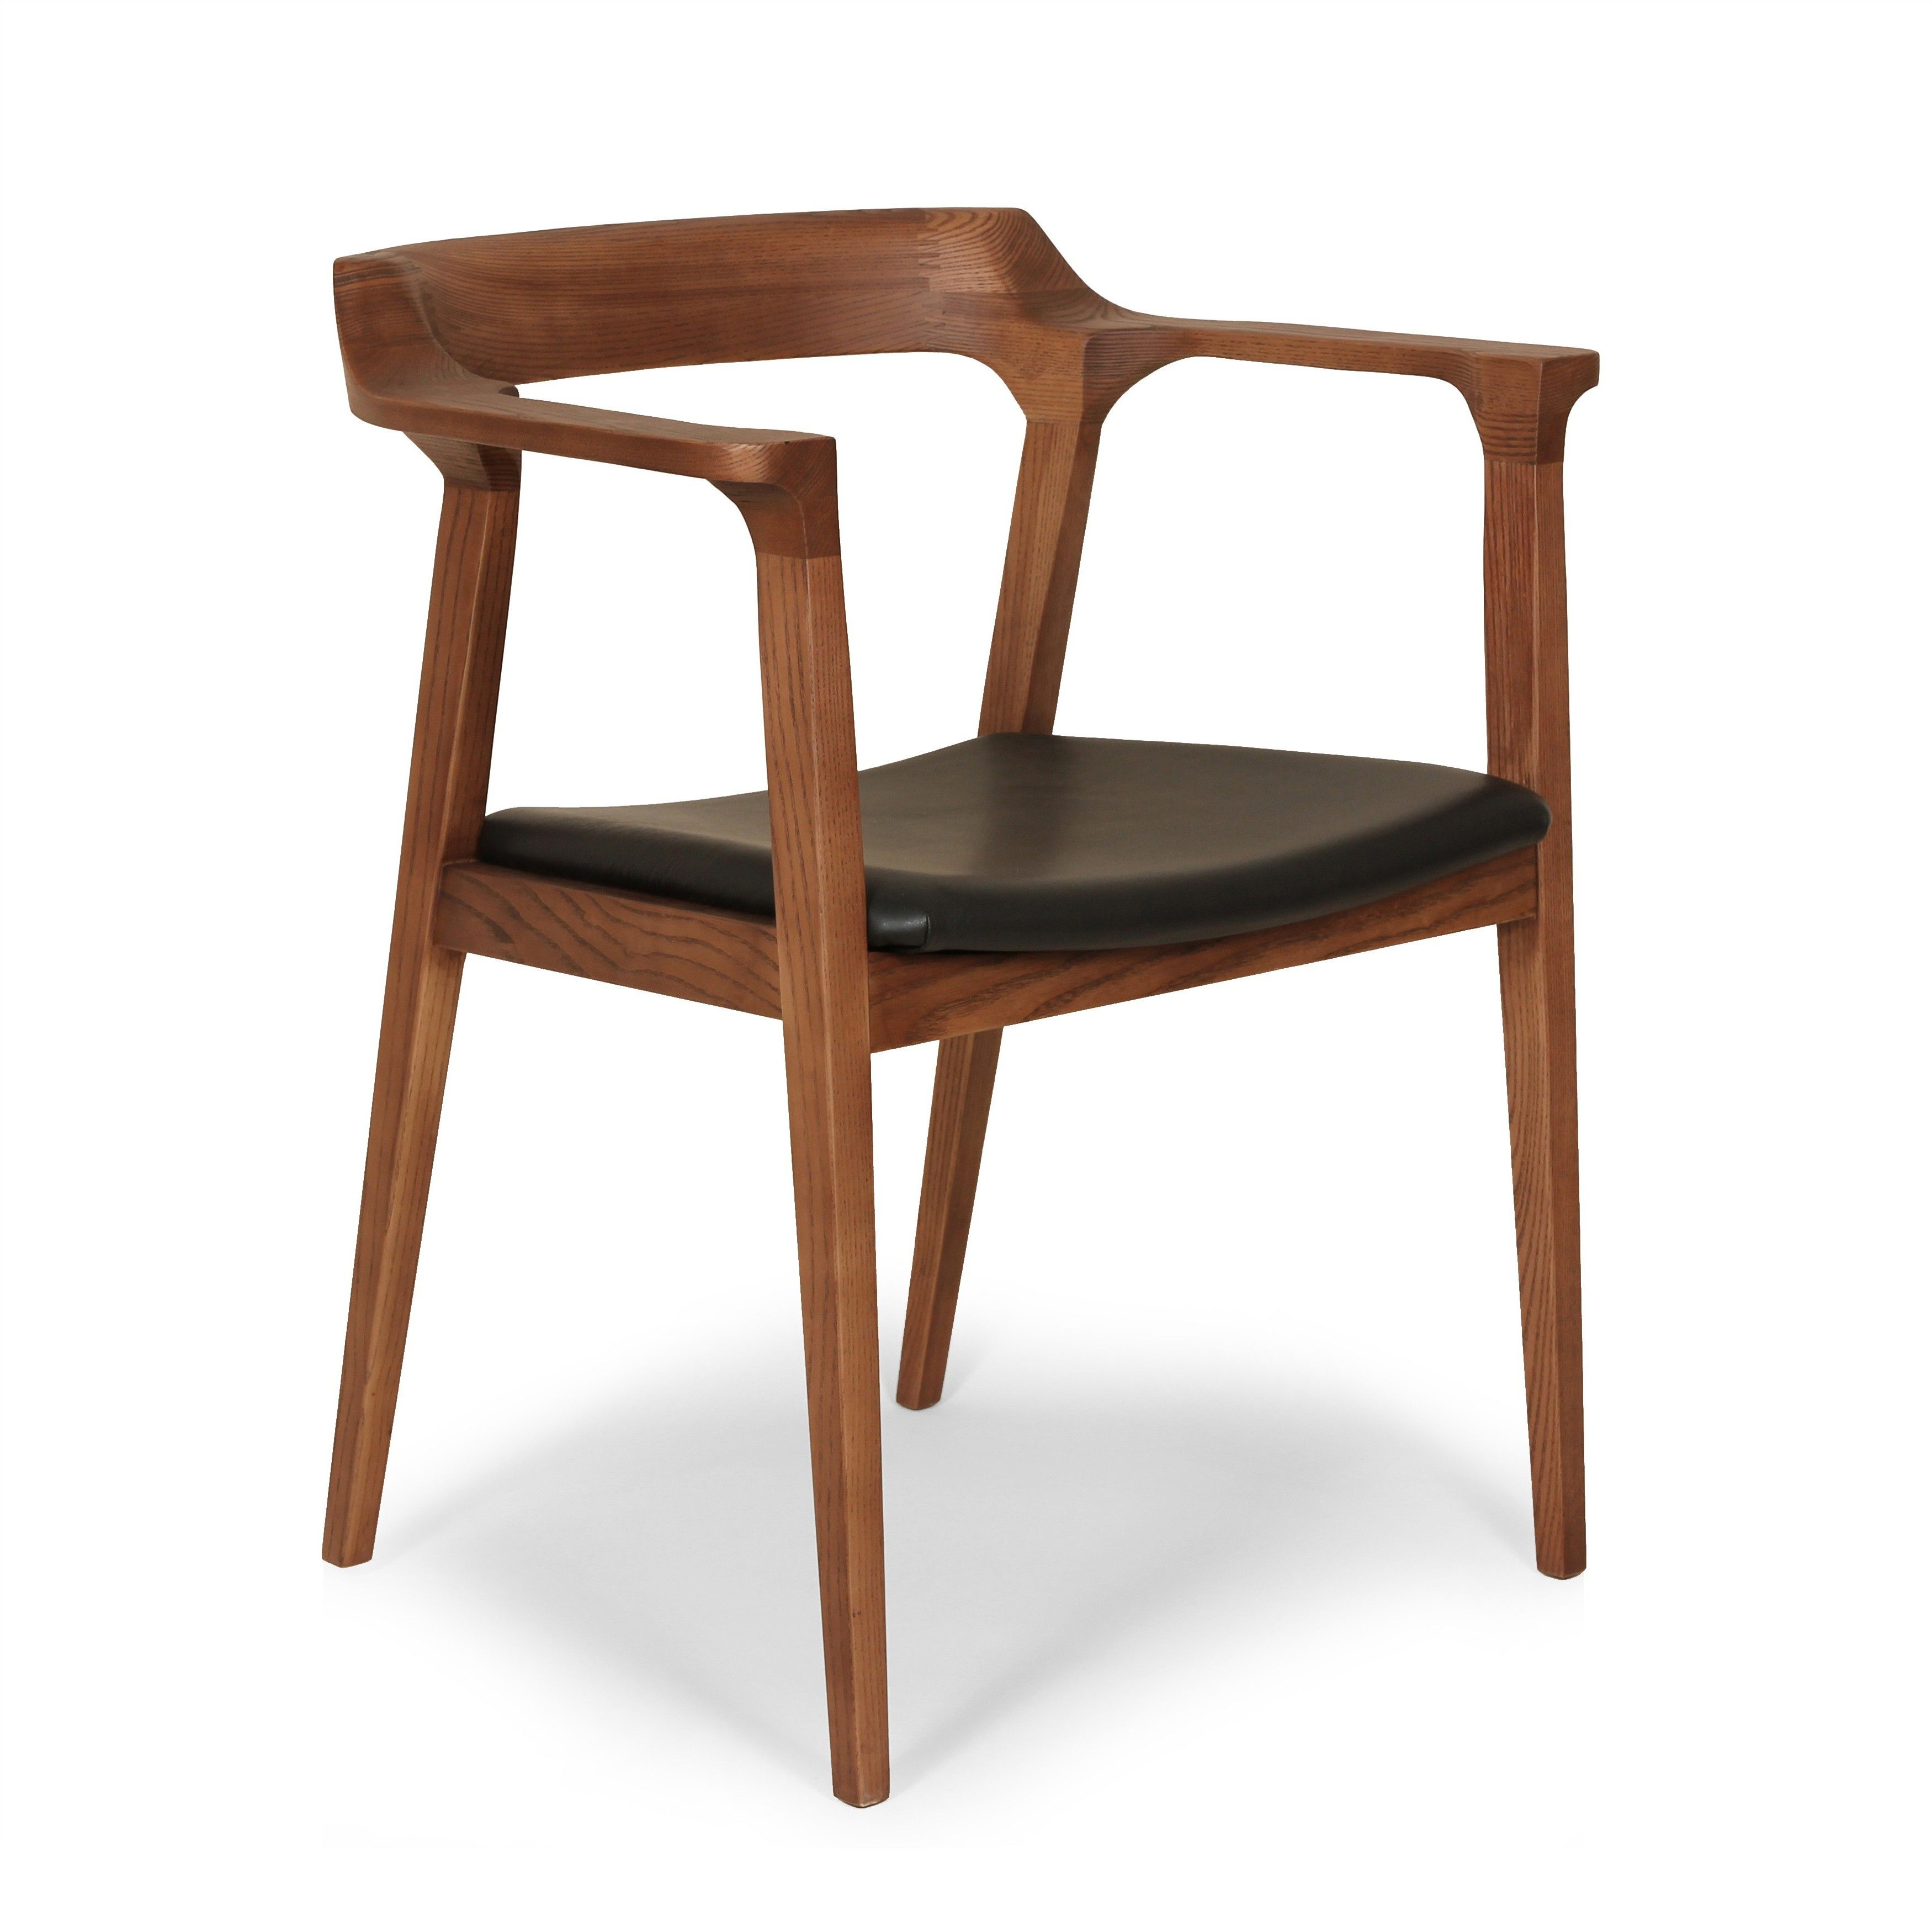 The Djursholm Arm Chair [FEC9022BLK] - Arm Chairs - Dining Room